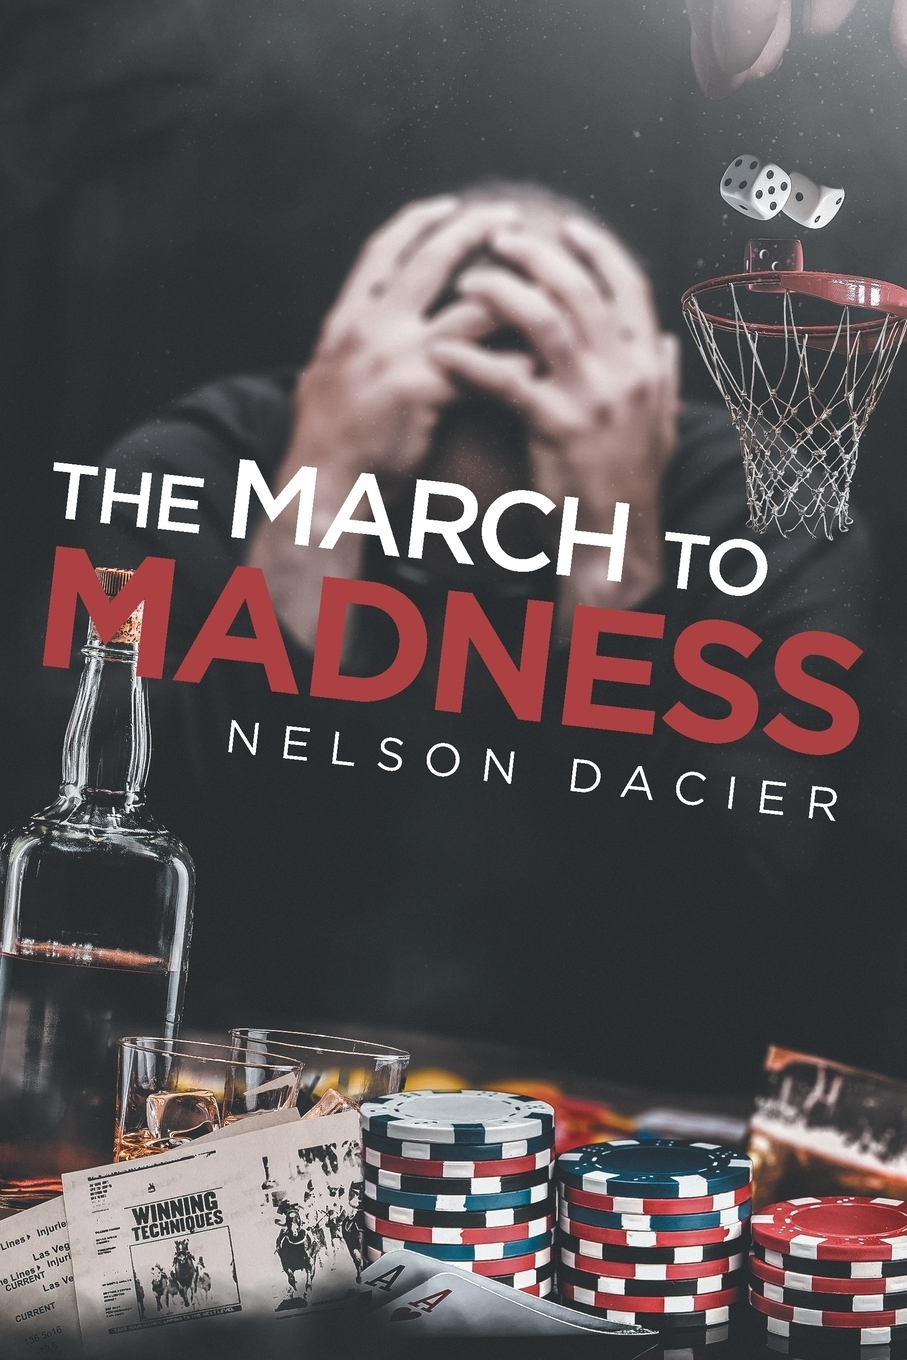 Nelson Dacier. The March to Madness